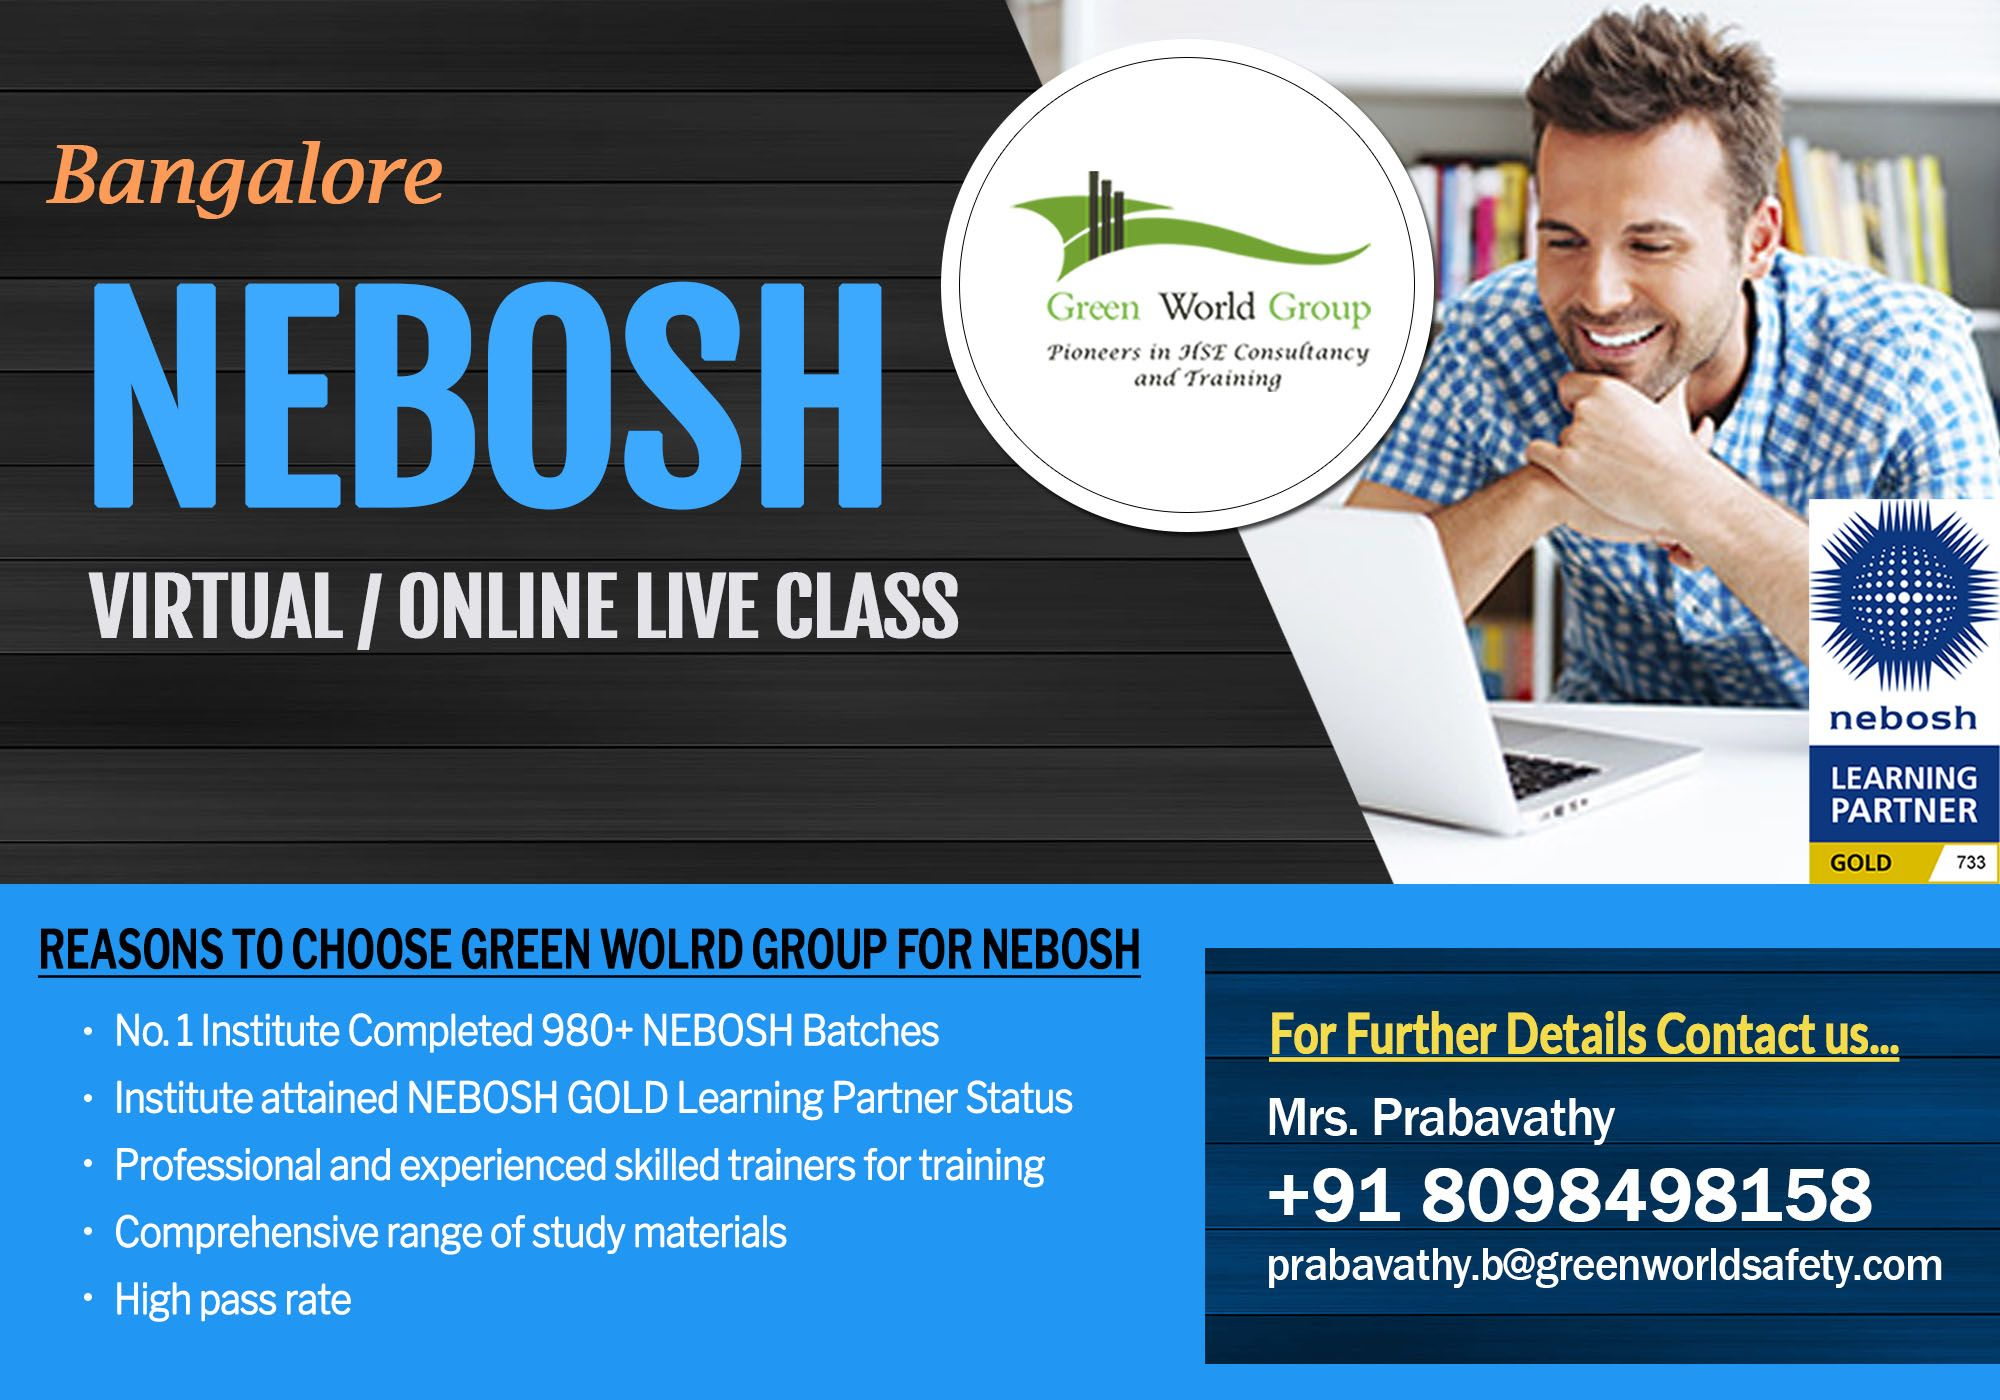 Stay Safe... prepare Nebosh Virtual / Live Online with